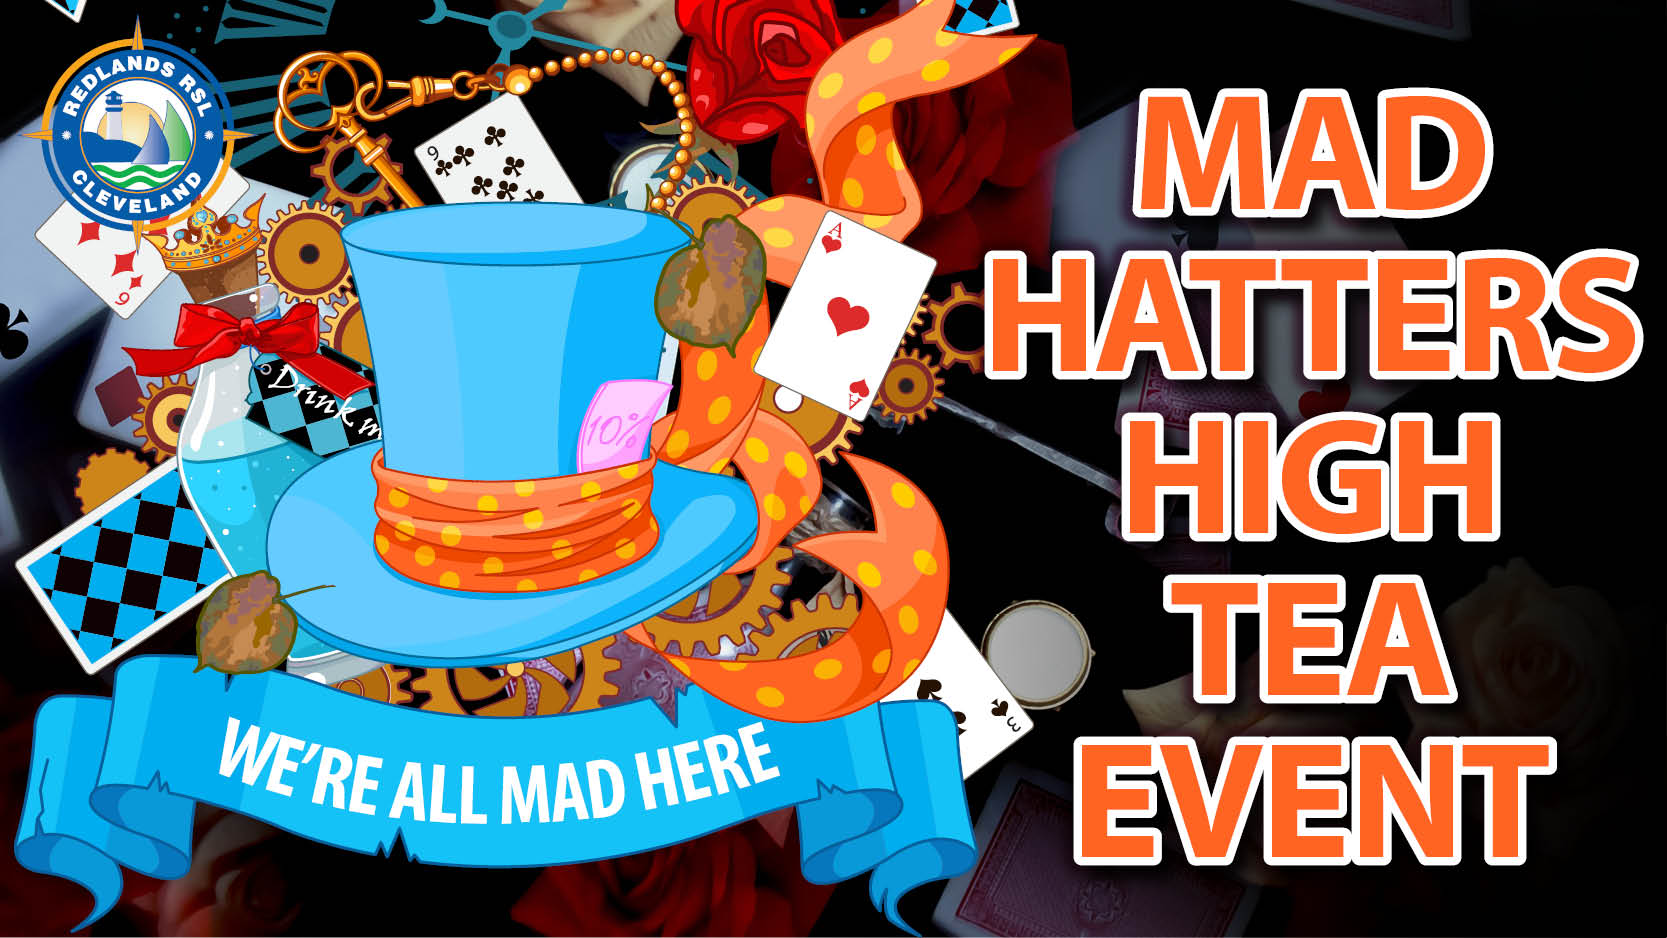 2019 Mad Hatters Fbook Event Pic.jpg